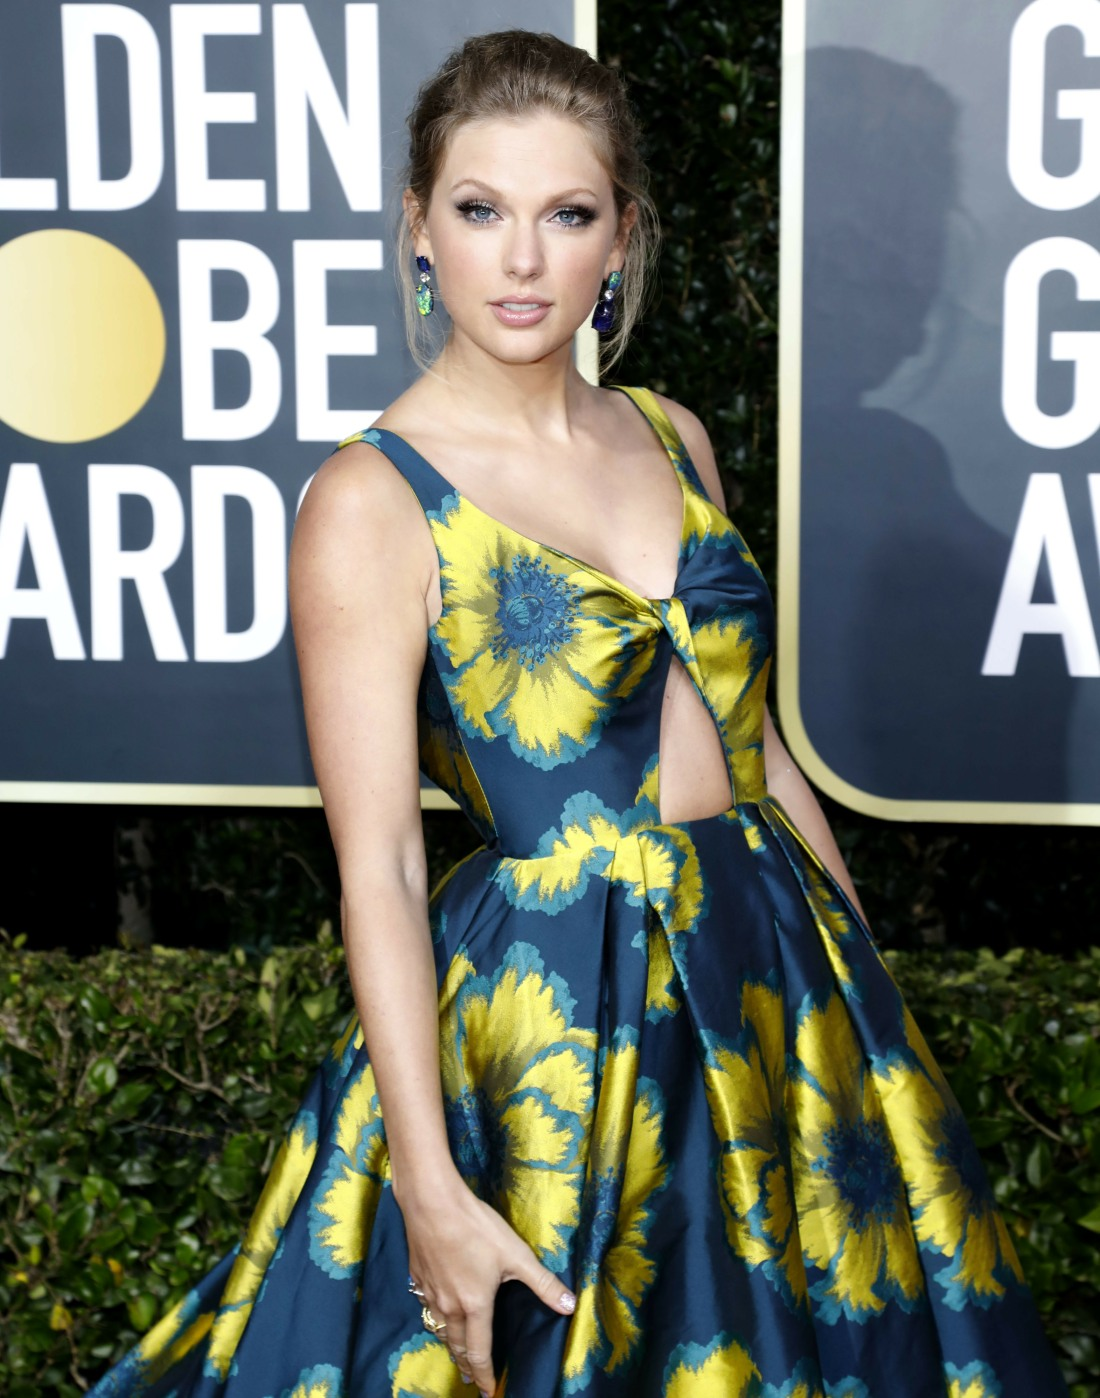 Taylor Swift attending the 77th Annual Golden Globe Awards at The Beverly Hilton Hotel on January 5, 2020 in Beverly Hills, California. | usage worldwide